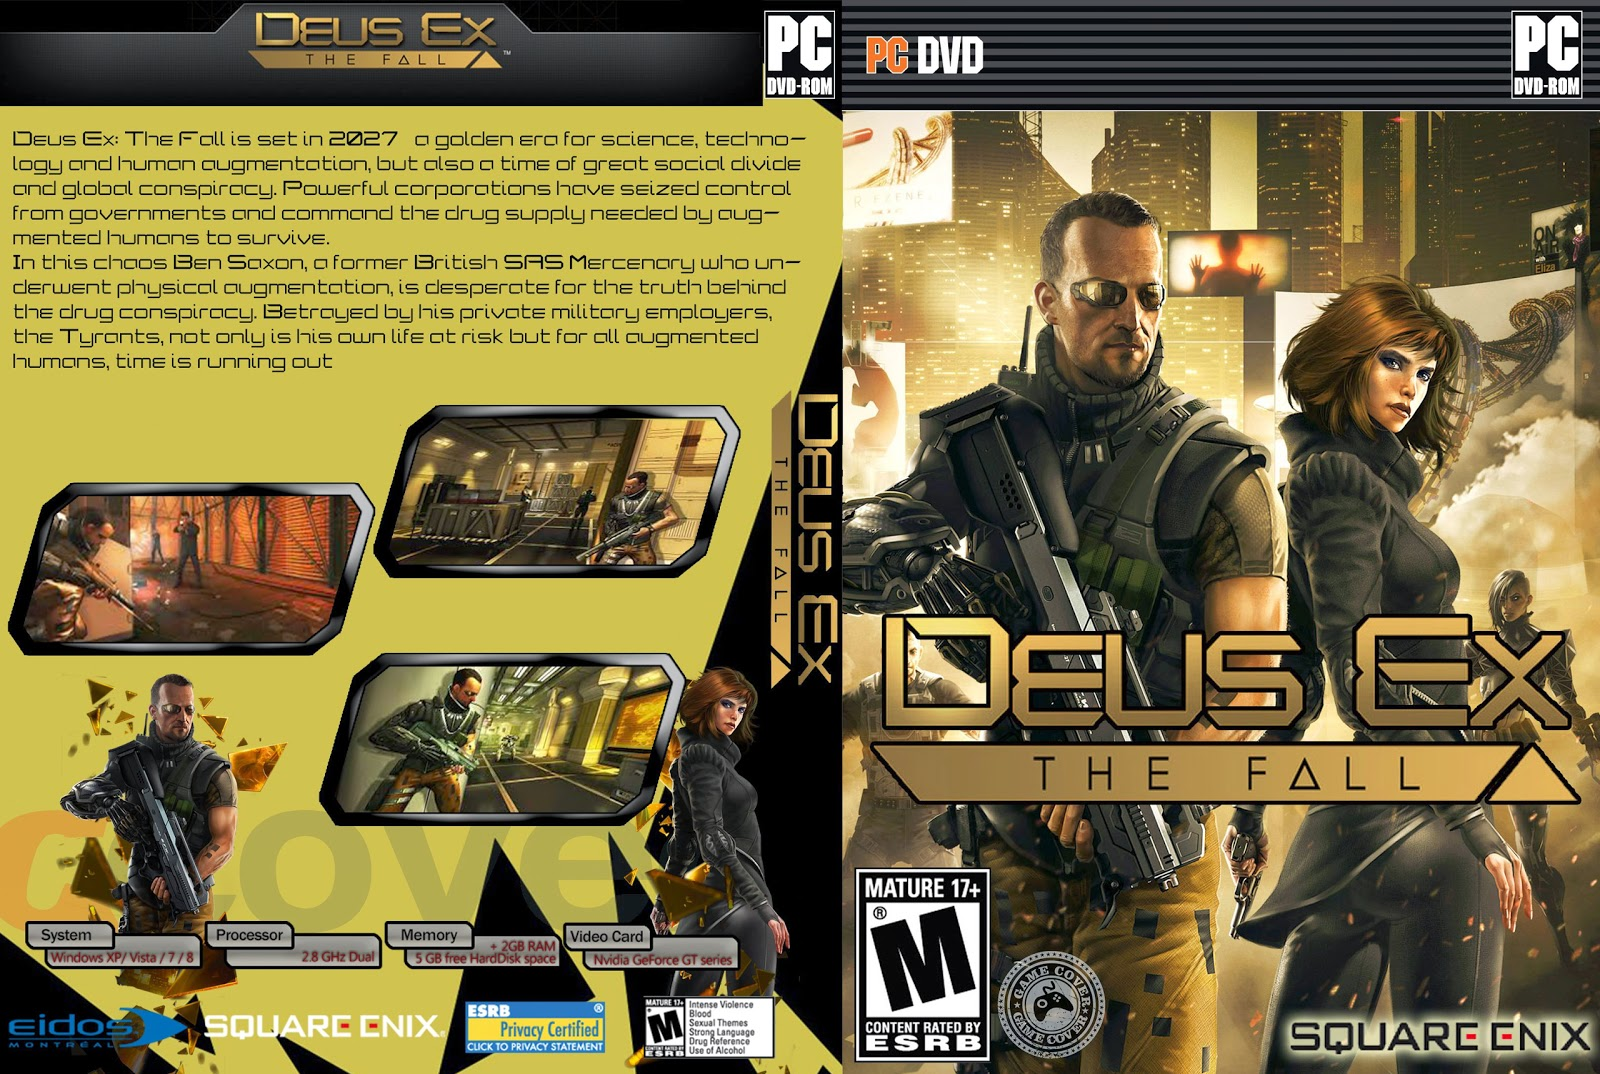 Capa Deus Ex The Fall PC [Exclusiva]